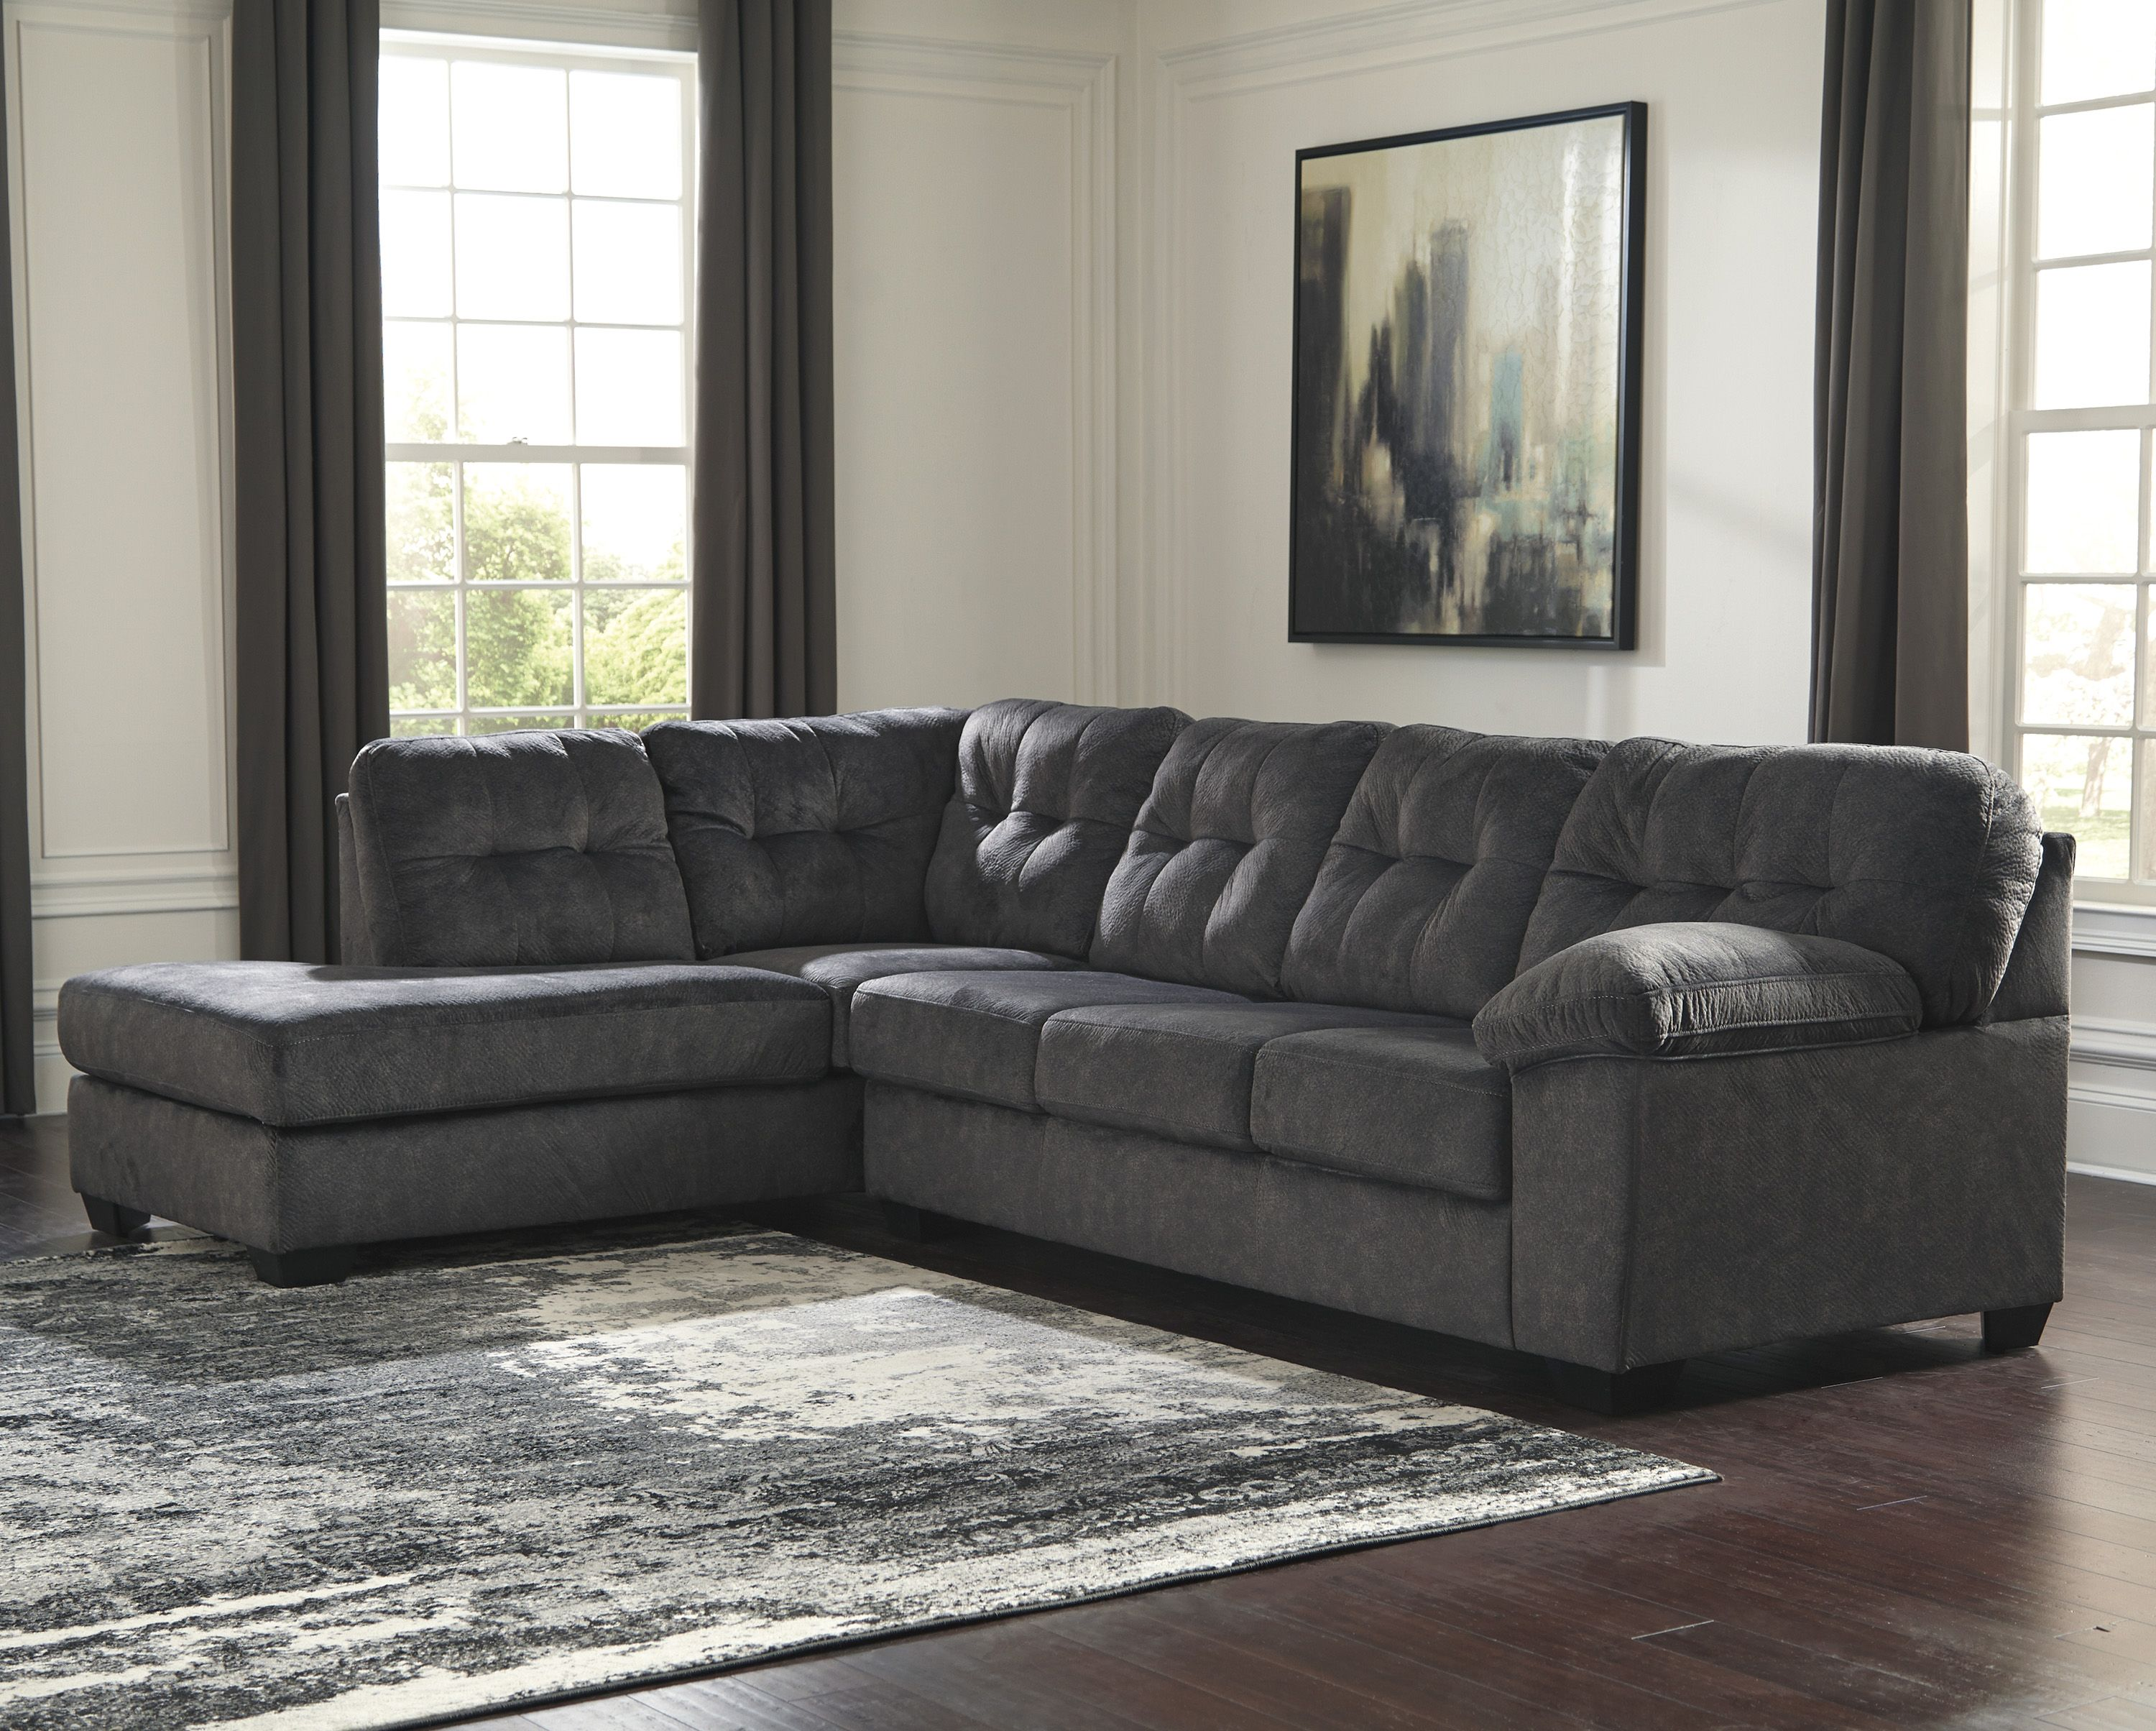 Accrington Granite Right Or Left Arm Facing Sectional Sofa | Marjen Of  Chicago | Chicago Discount